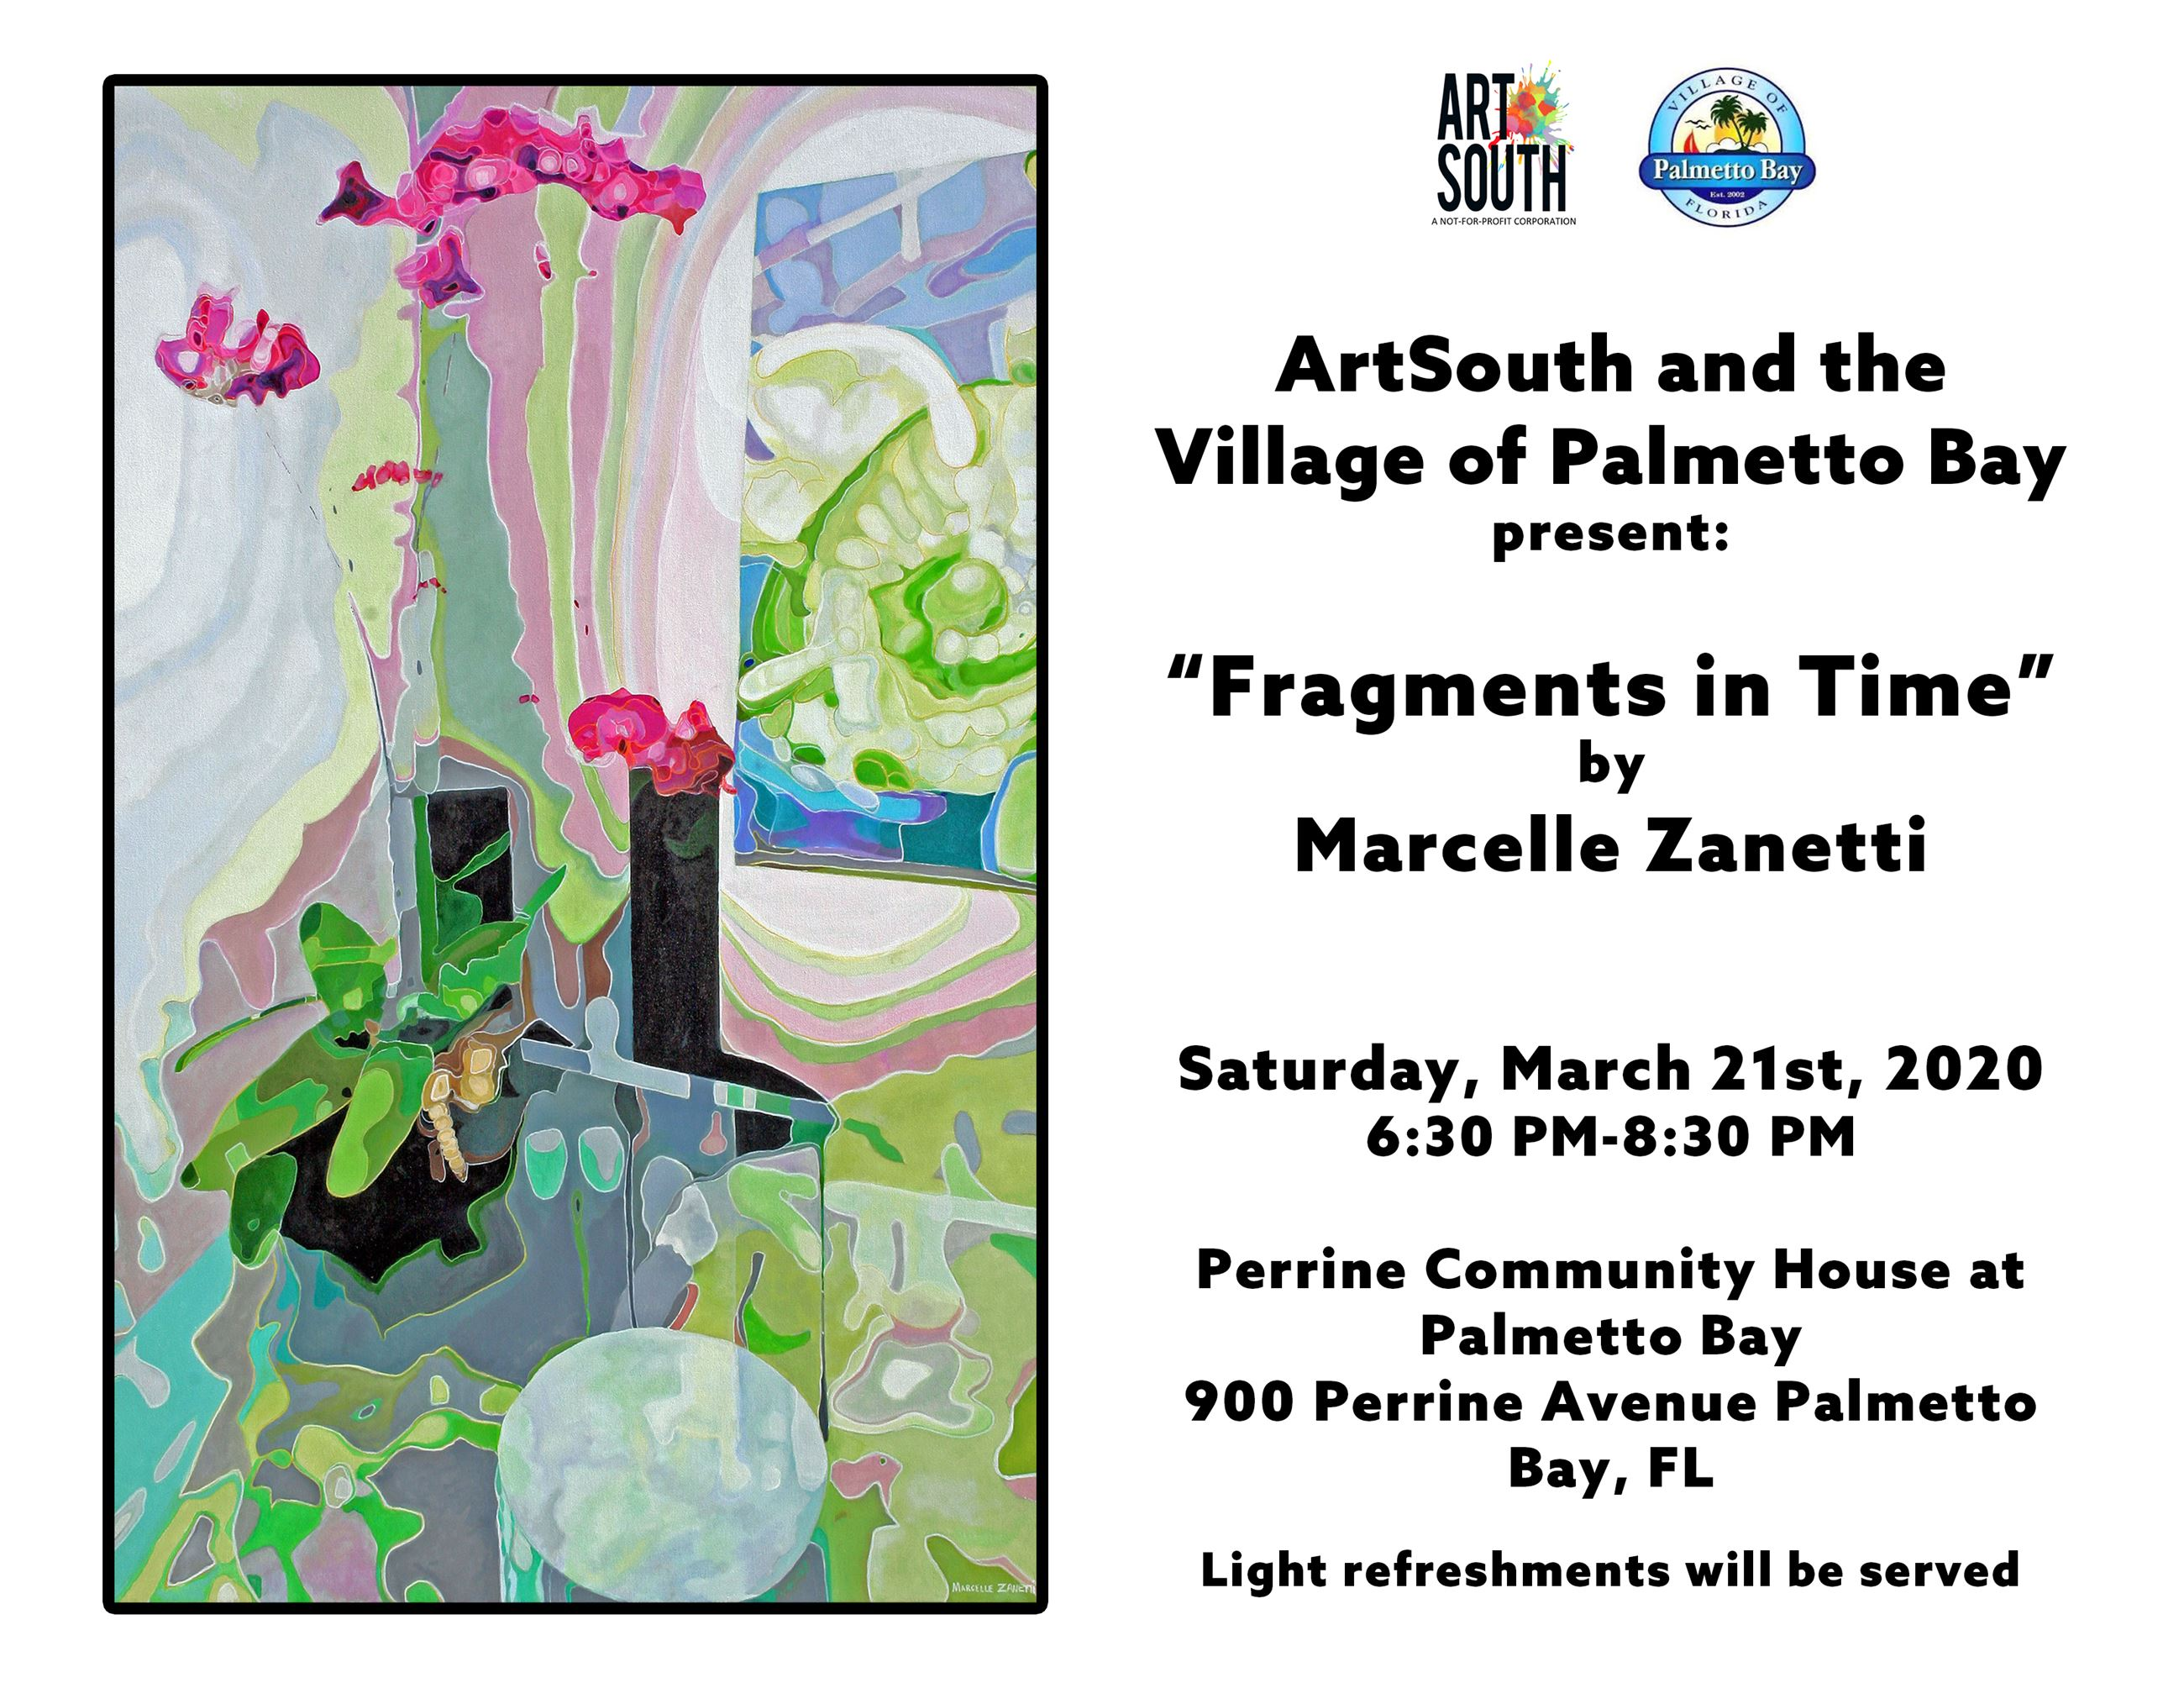 Palmetto Bay Artist Exhibit Saturday, March 21st from 6:30-8:30p at Perrine Community House at Palme